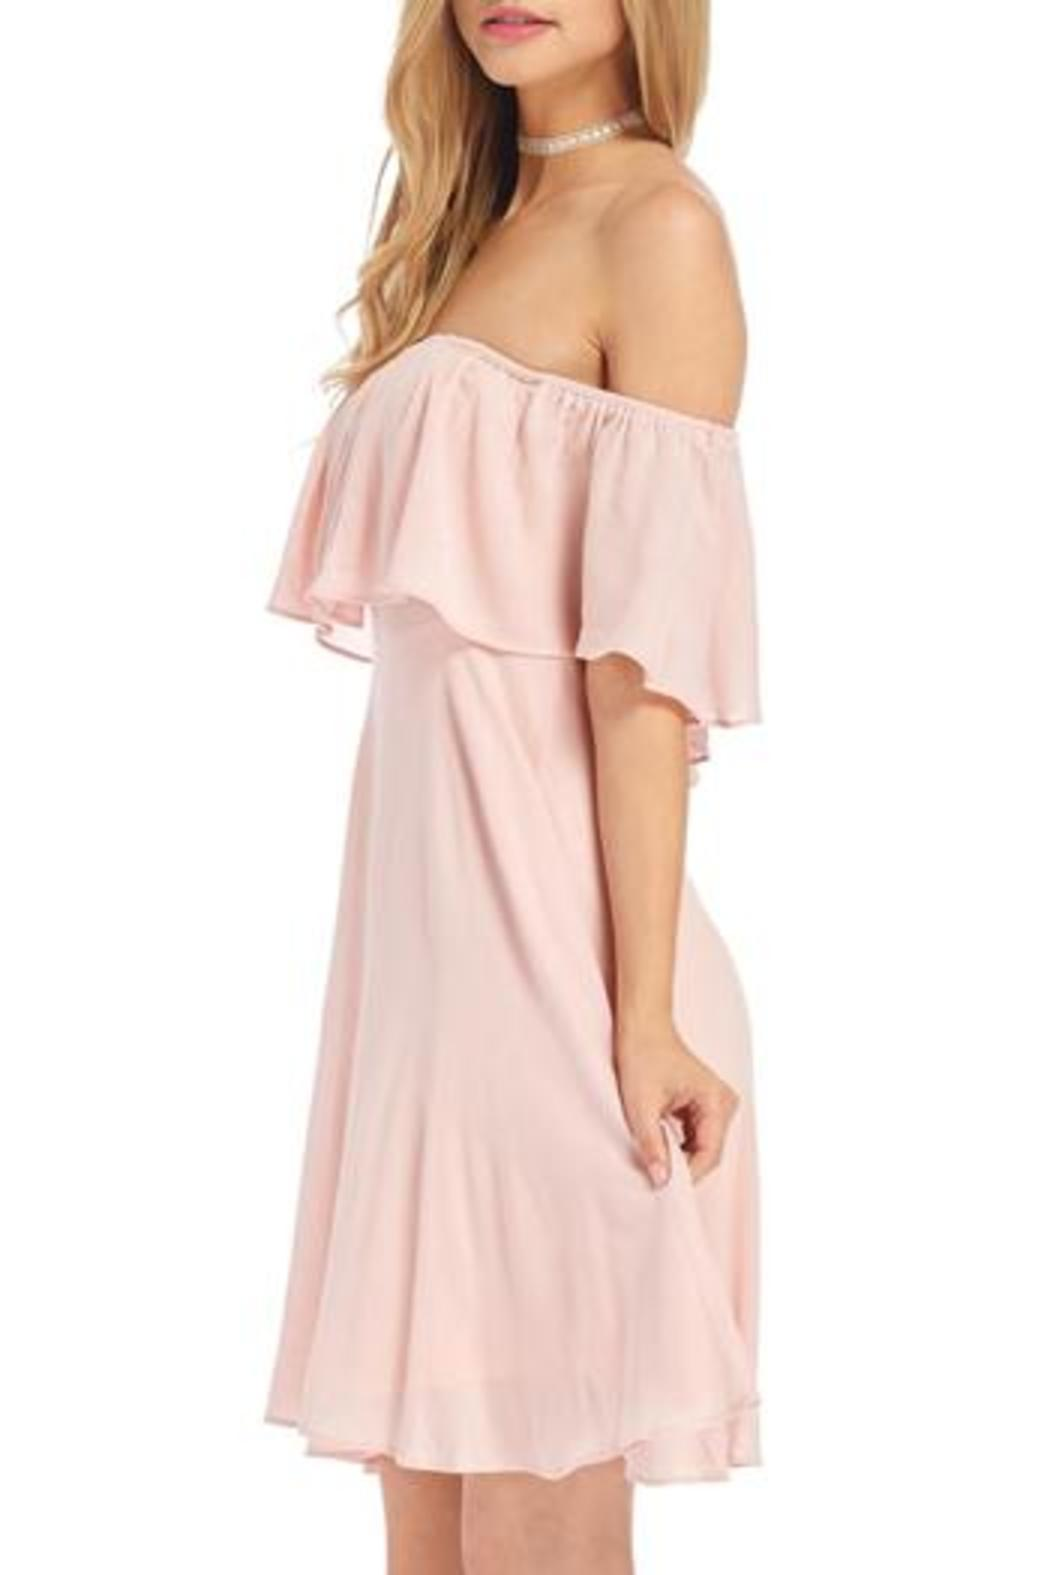 Hyfve Pink Off Shoulder Dress From Wisconsin By Apricot